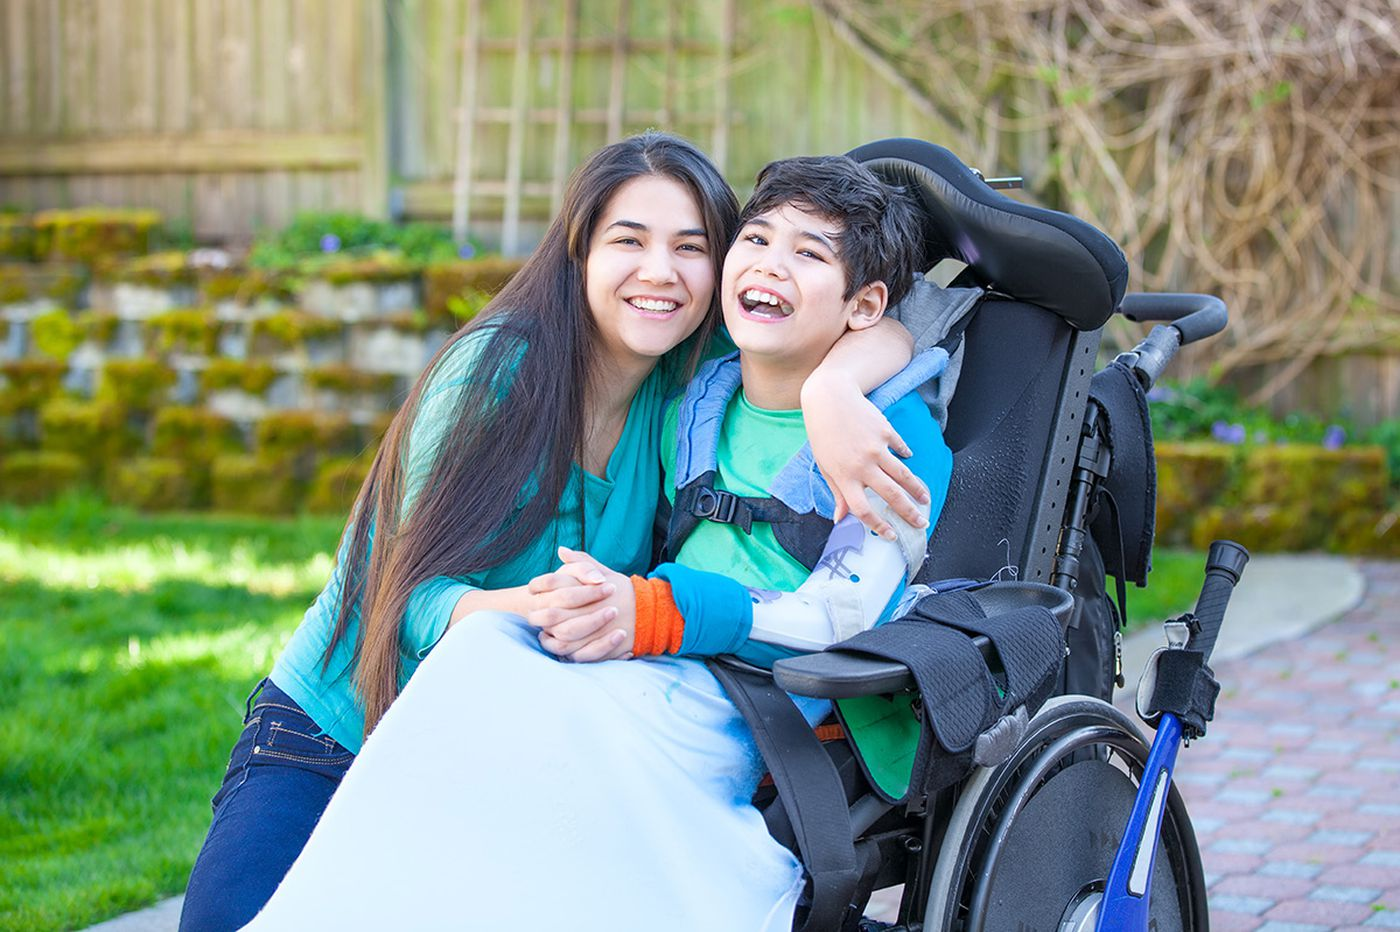 How we can help families who have kids with special needs